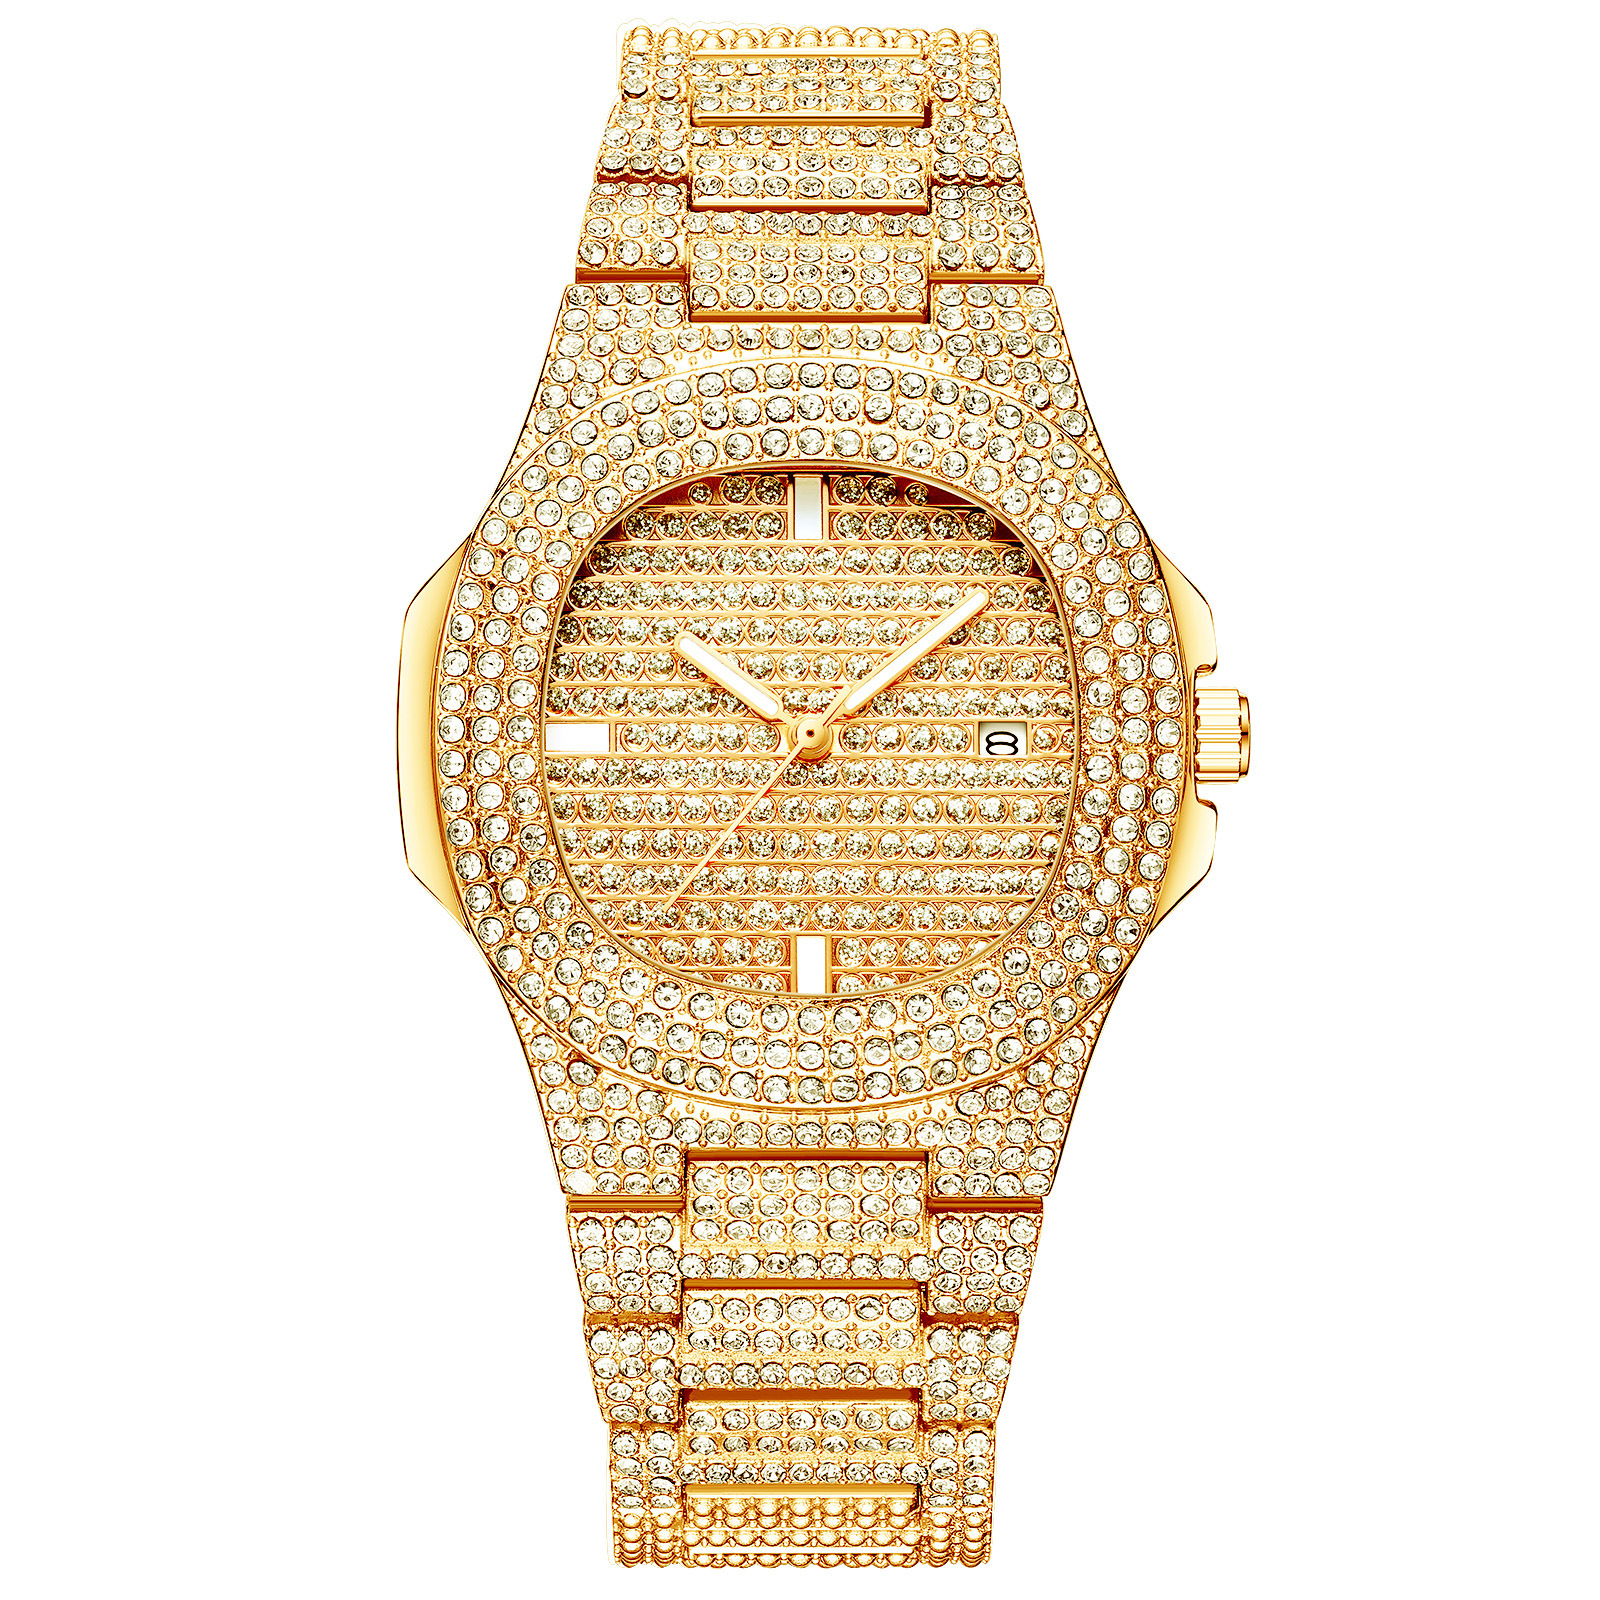 Arlanch Reloj Mujer Watch Women Luxury Diamond-Studded Square Calendar Quartz Wristwatches Stylish Water Resistant Crystal Gift